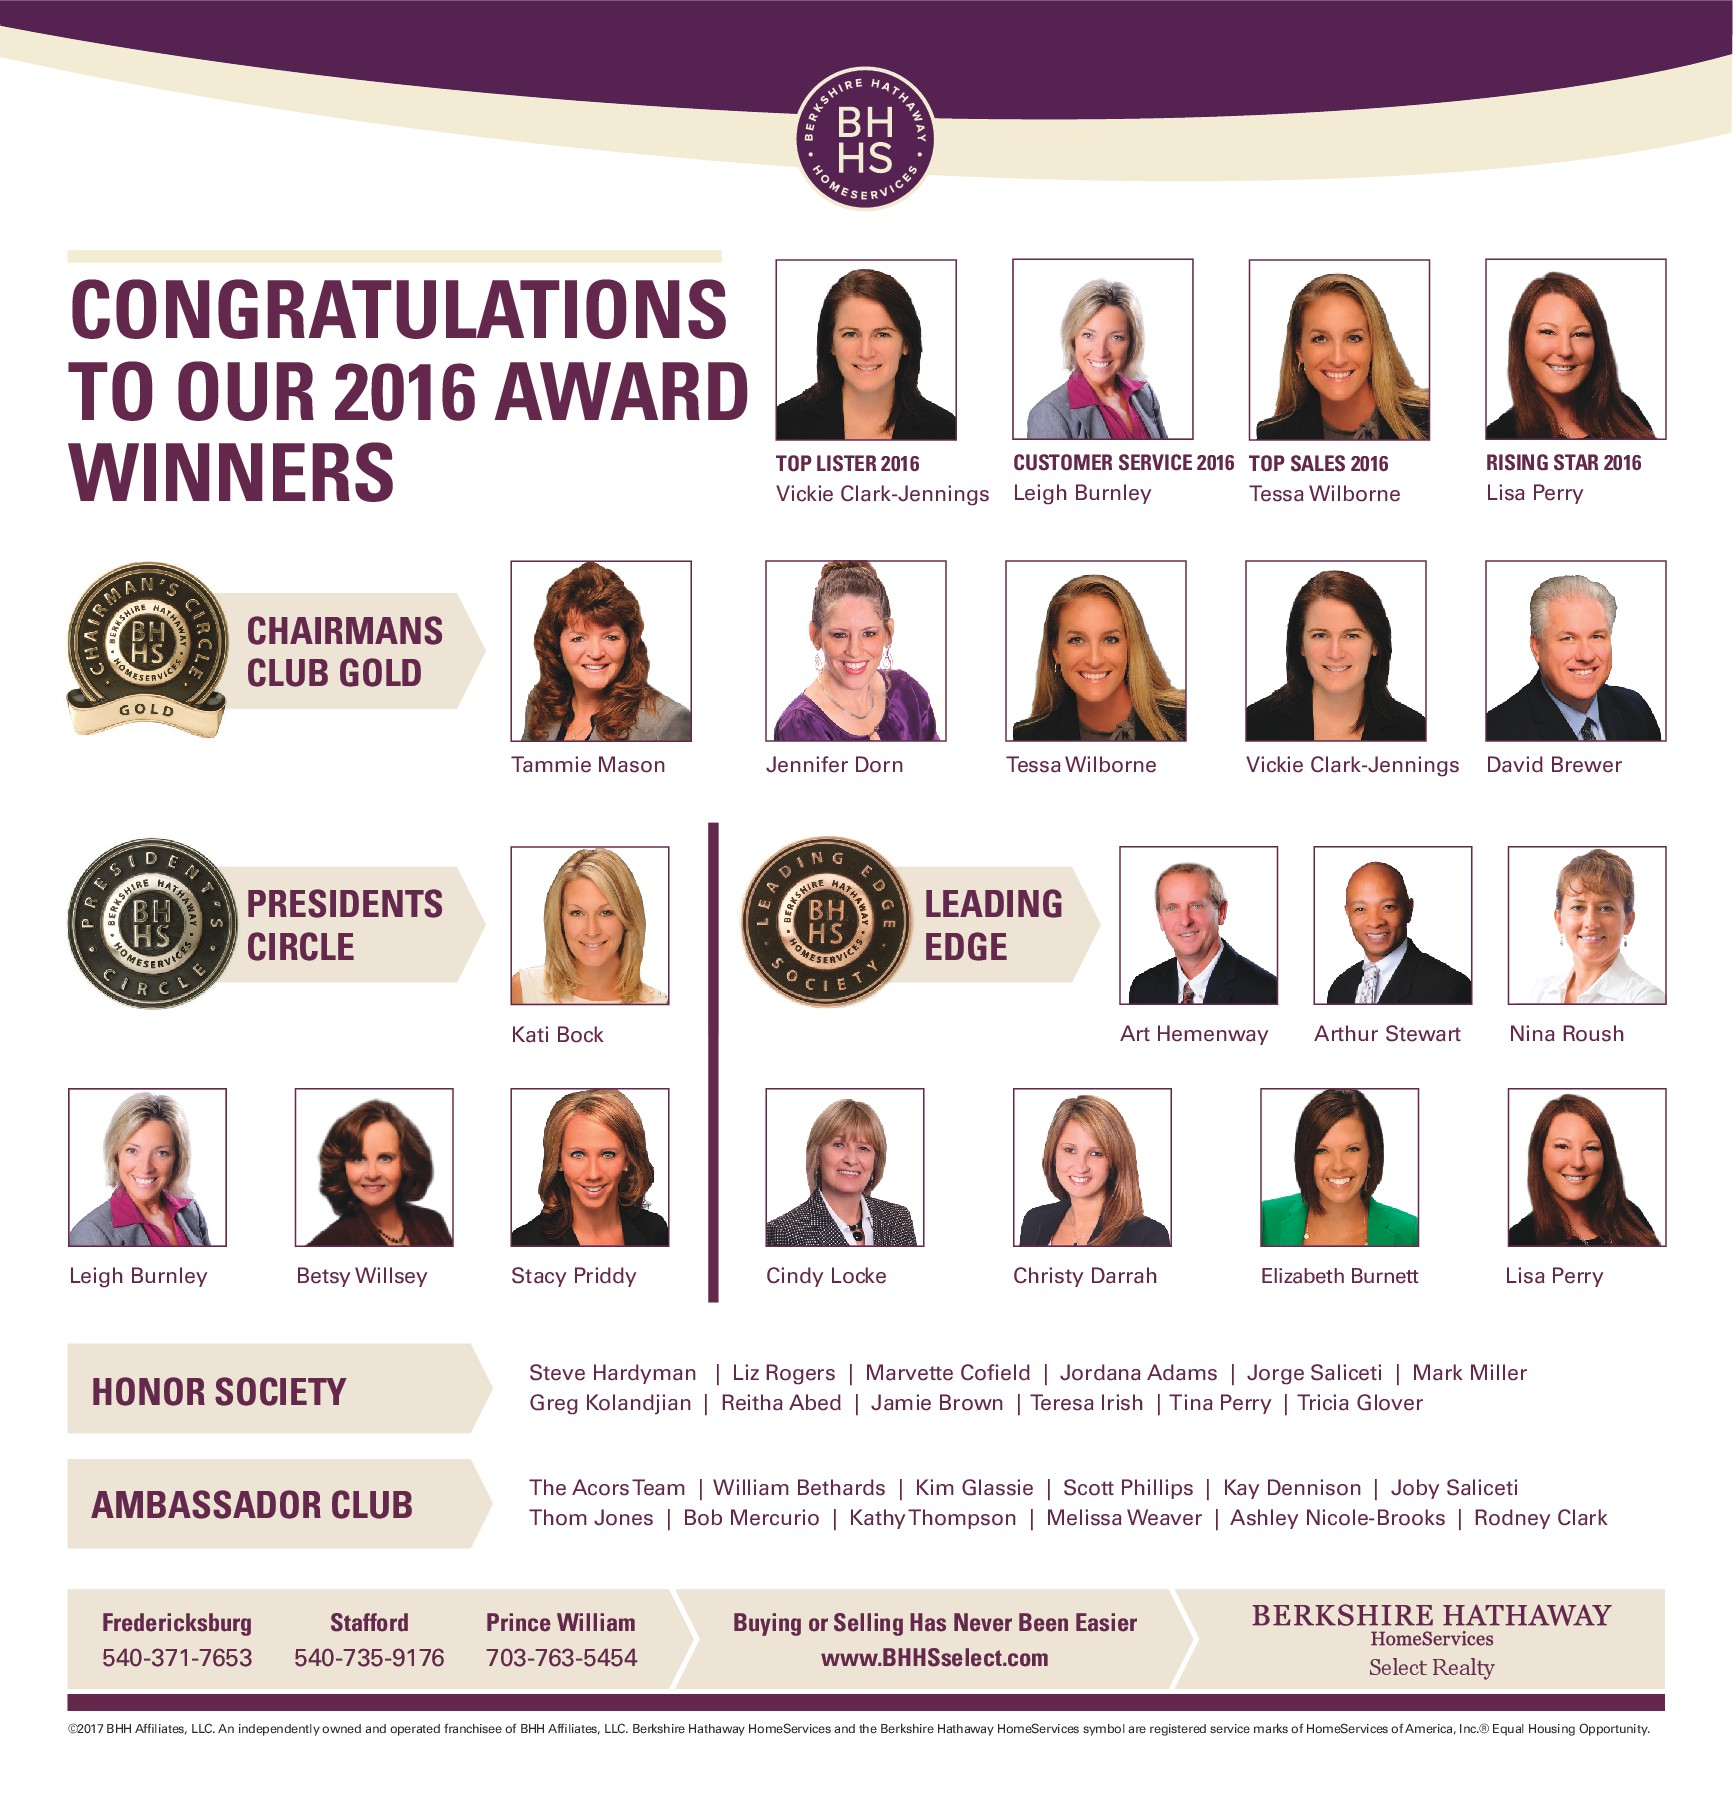 berkshire hathaway homeservices select realty honors associates